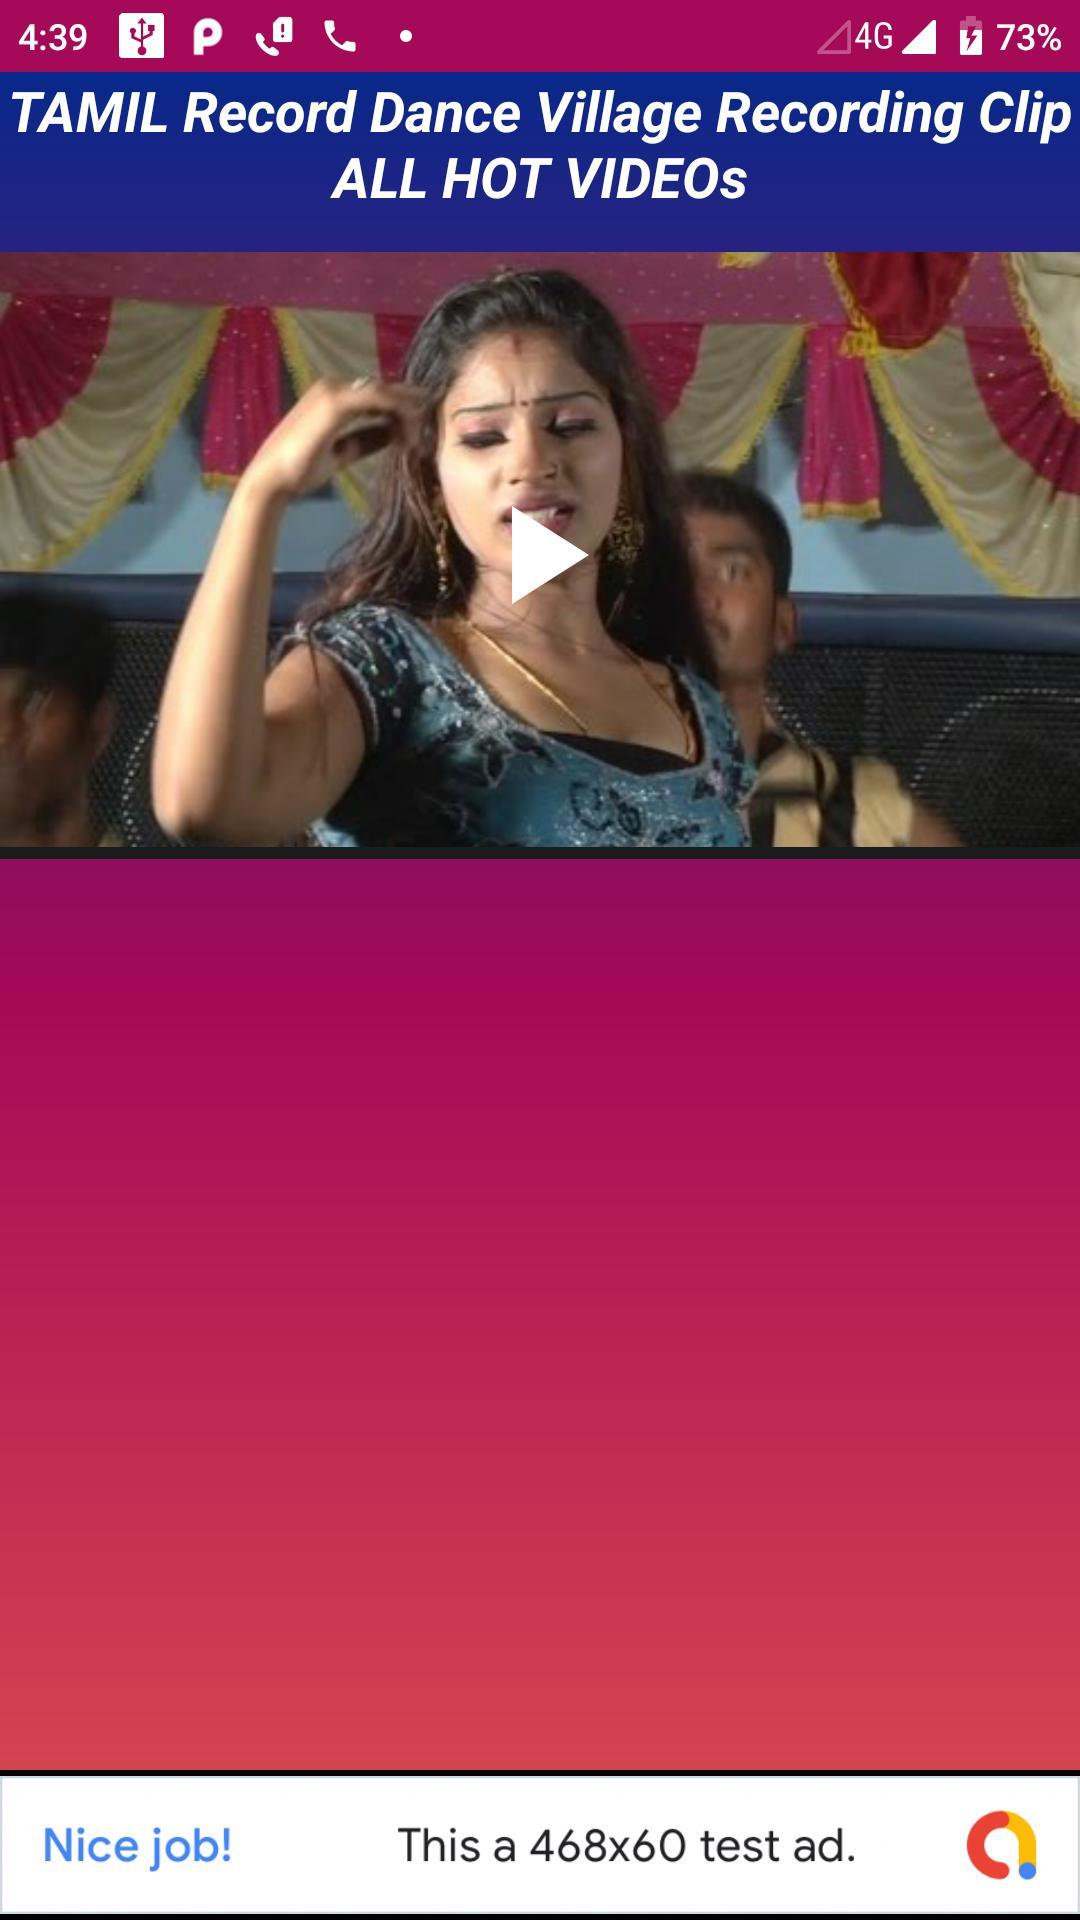 TAMIL Record Dance App Village Recording Clip for Android - APK Download